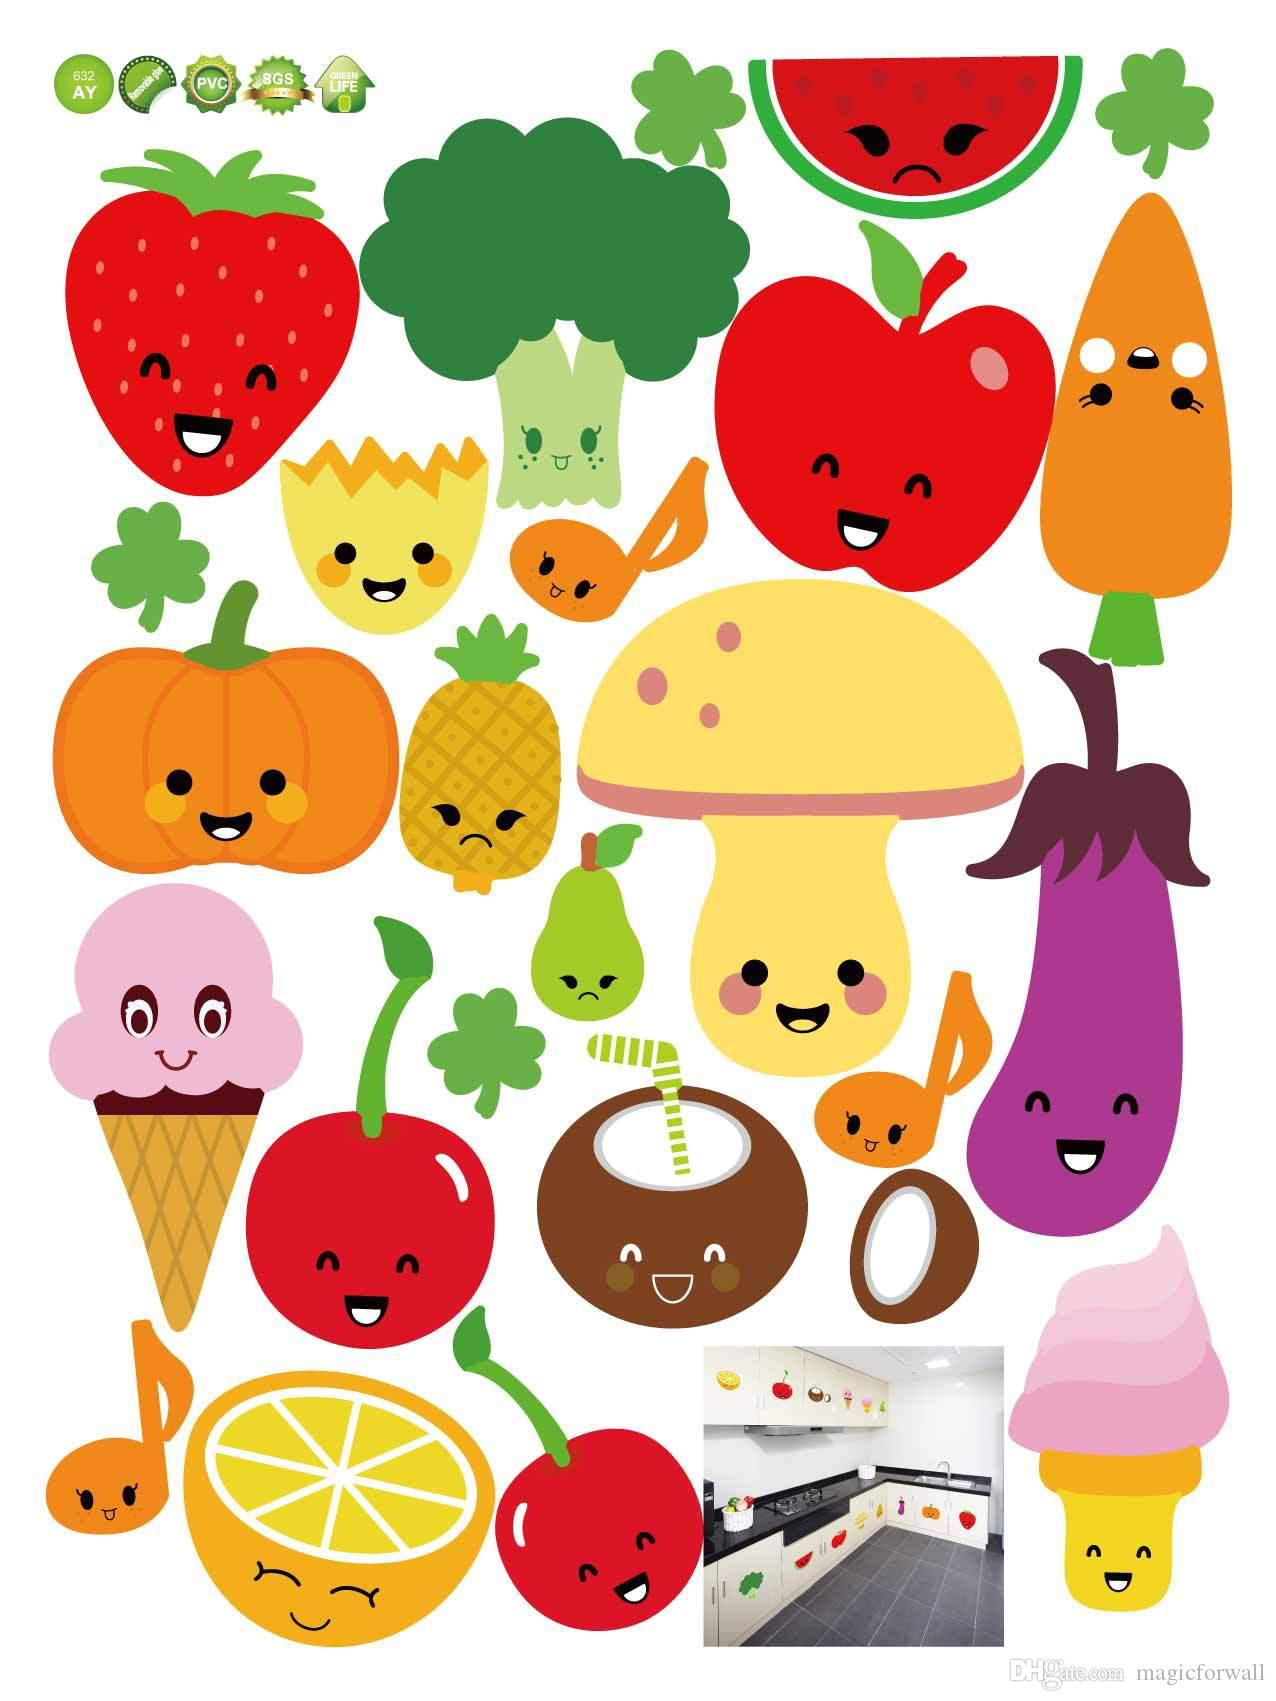 Wall Mural Stickers Cute Cartoon Fruits Wall Art Mural Decor Kitchen Wall